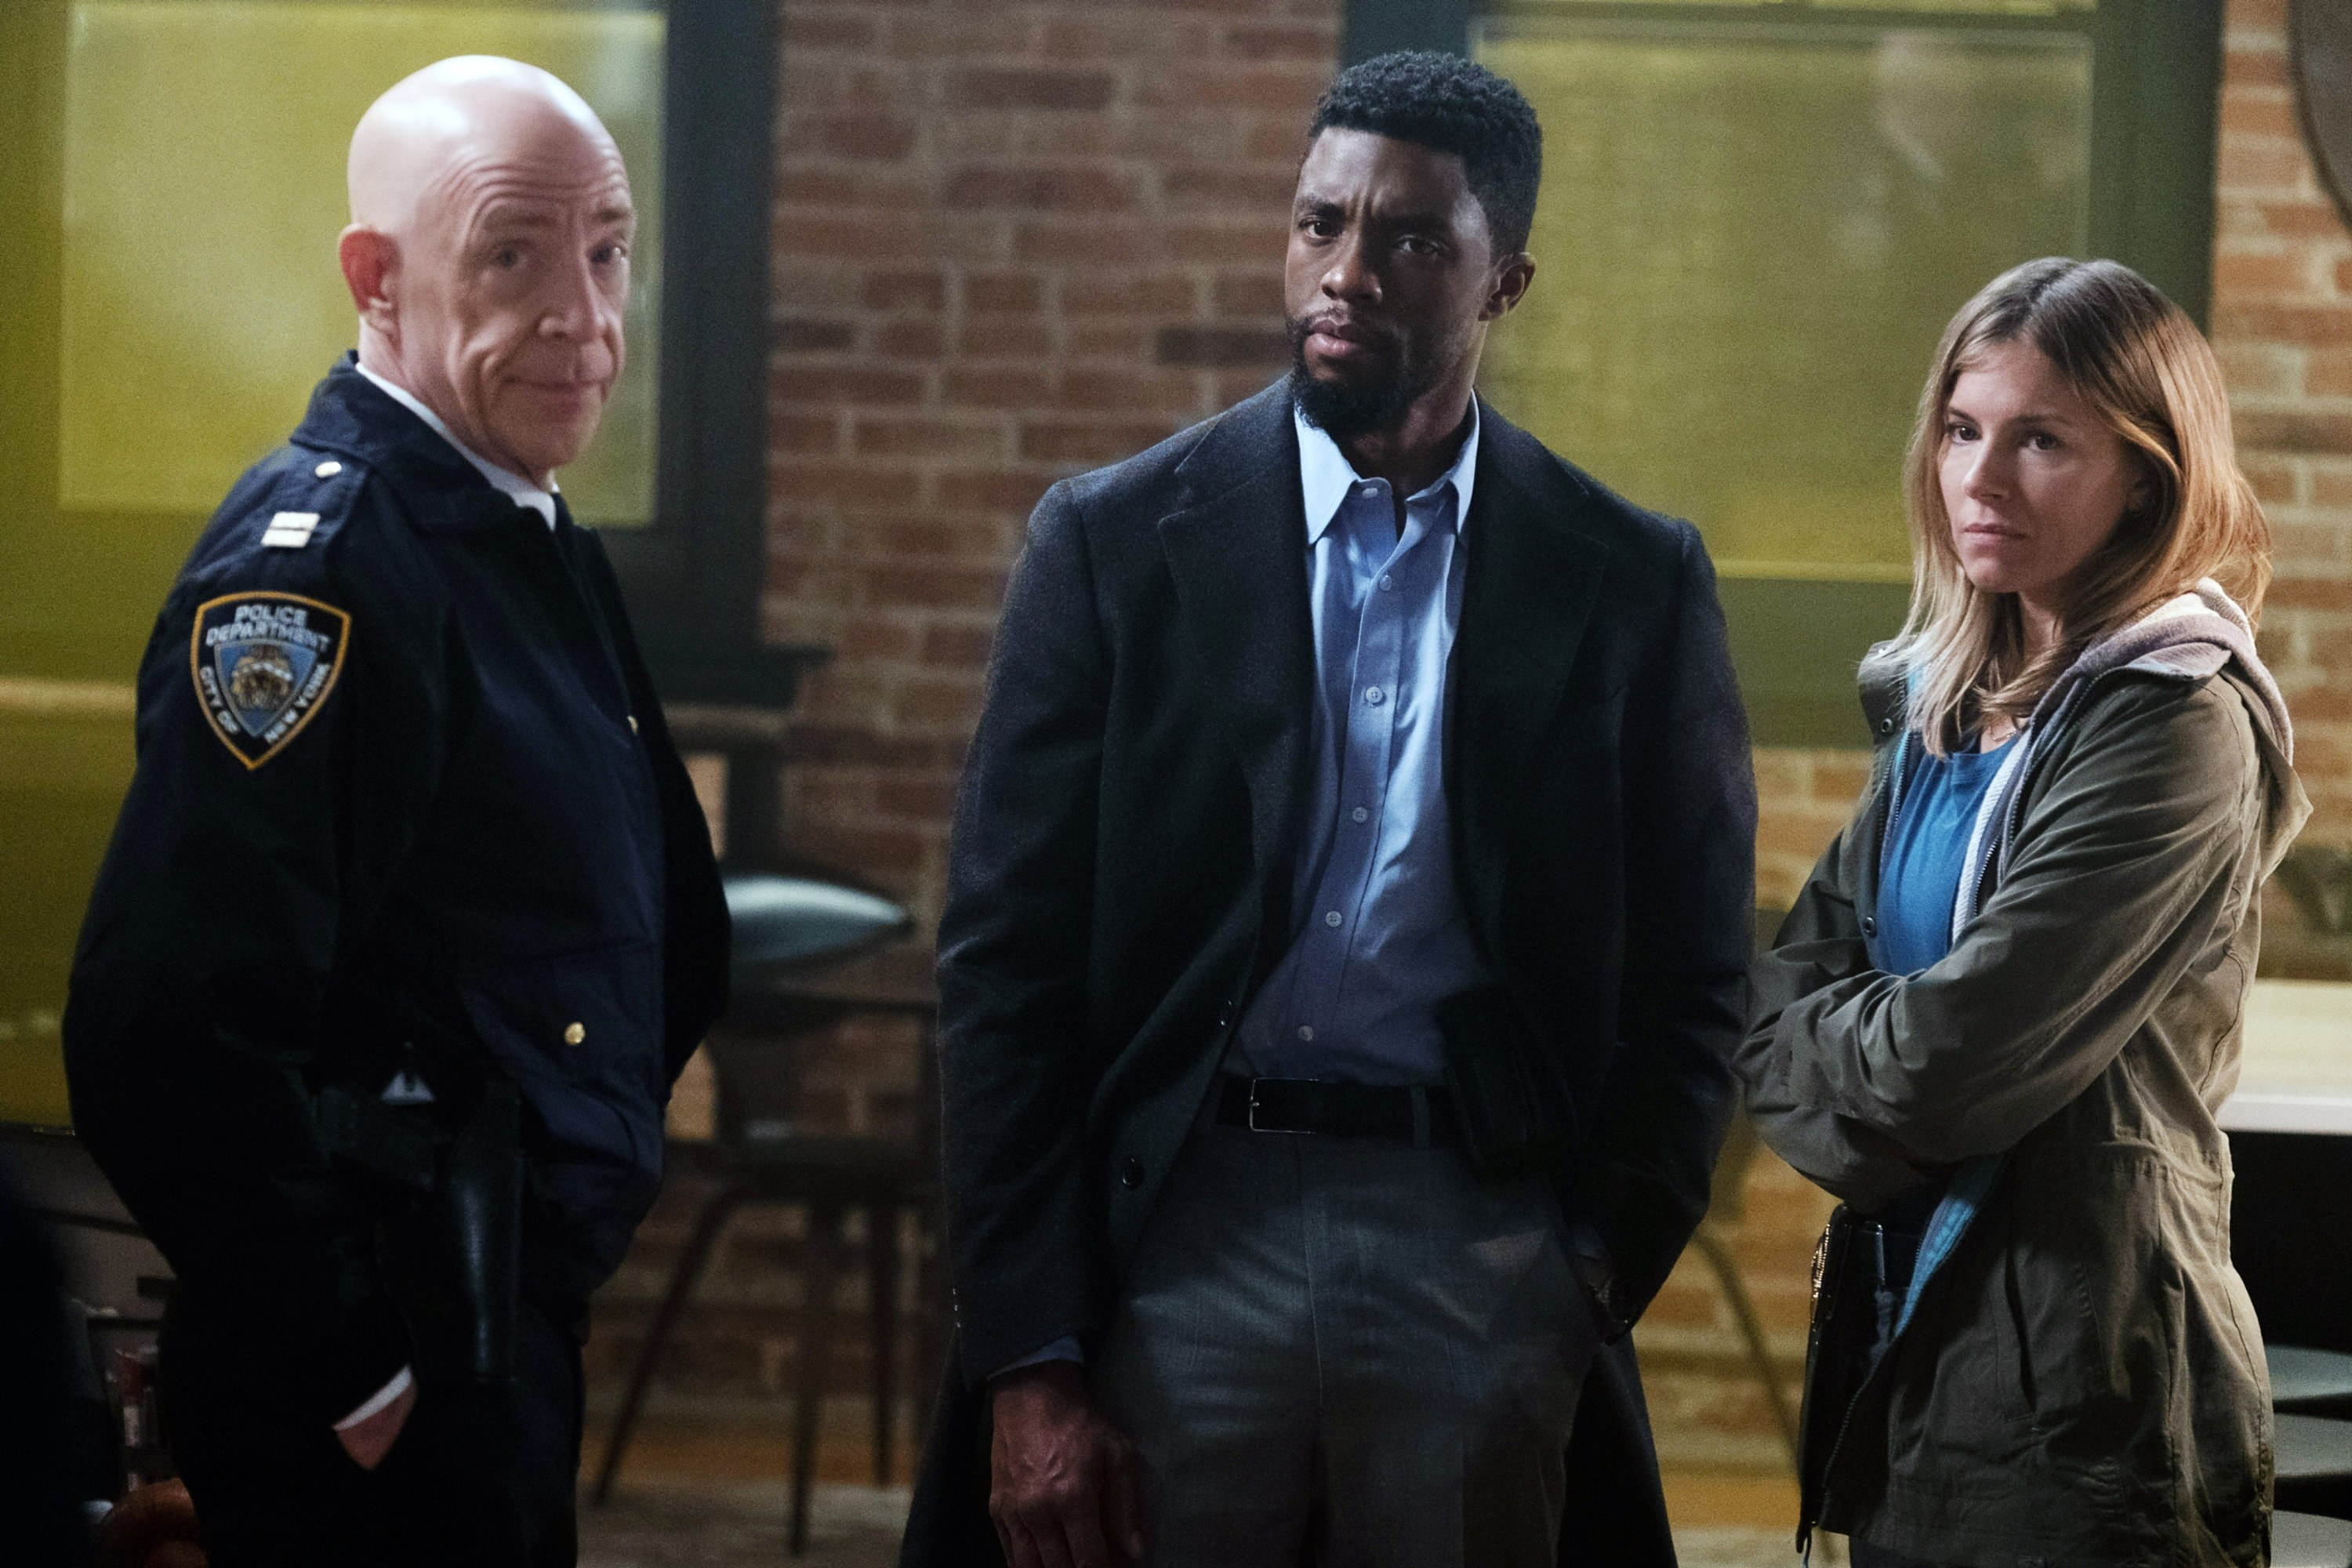 Chadwick Boseman as a detective standing between J.K. Simmons and Sienna Miller